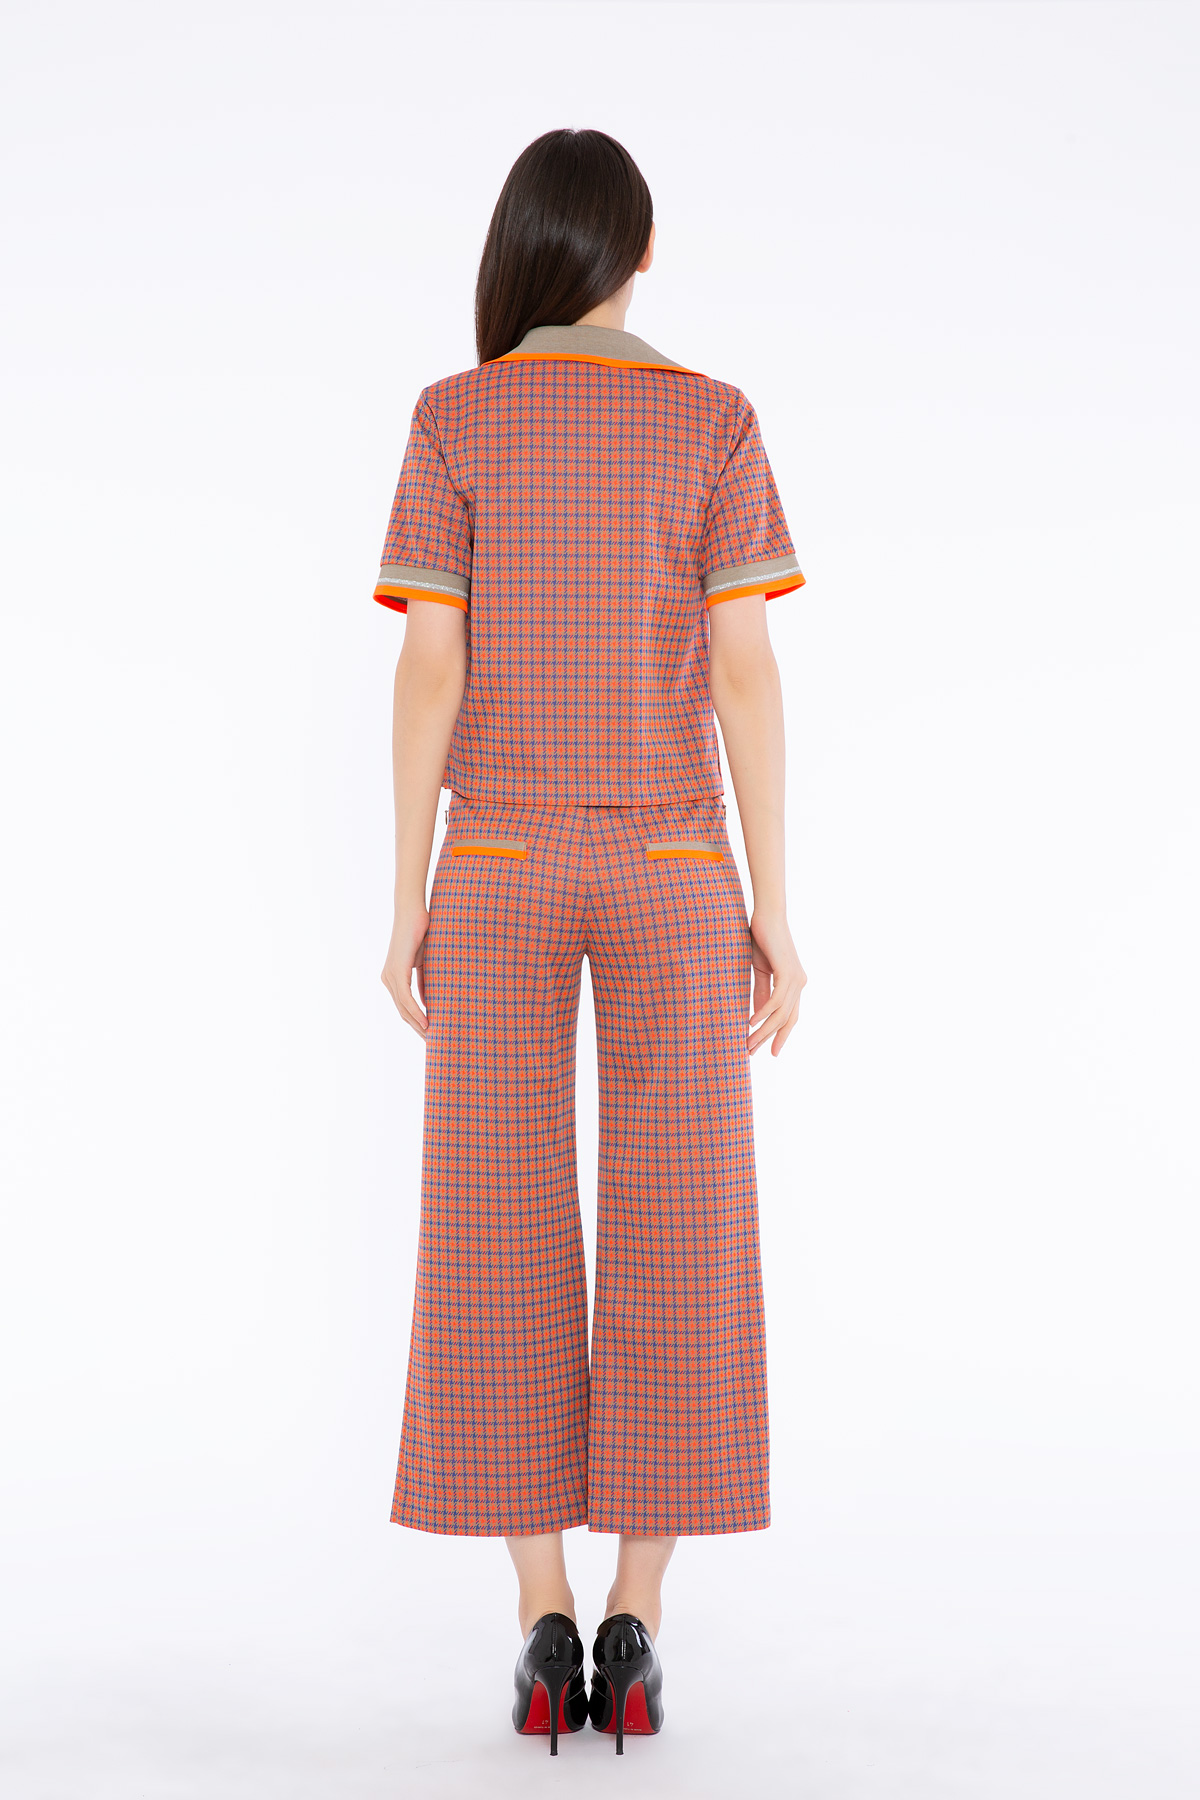 Arma Detailed Tricot Band Knitted Orange Crop Blouse